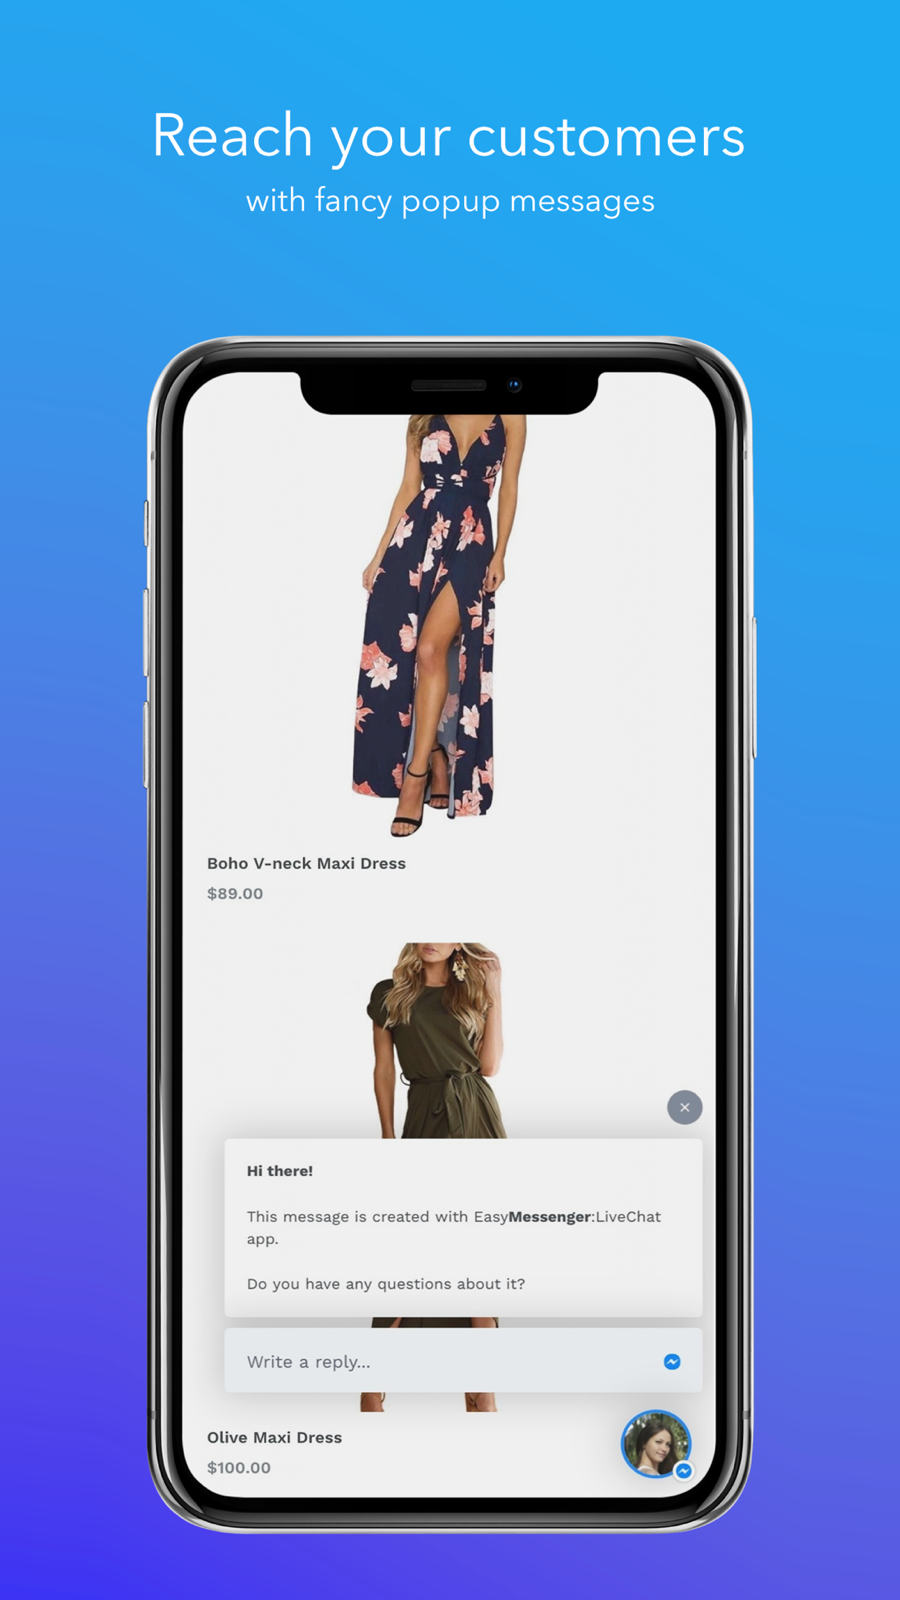 Reach your customers with fancy popup messages